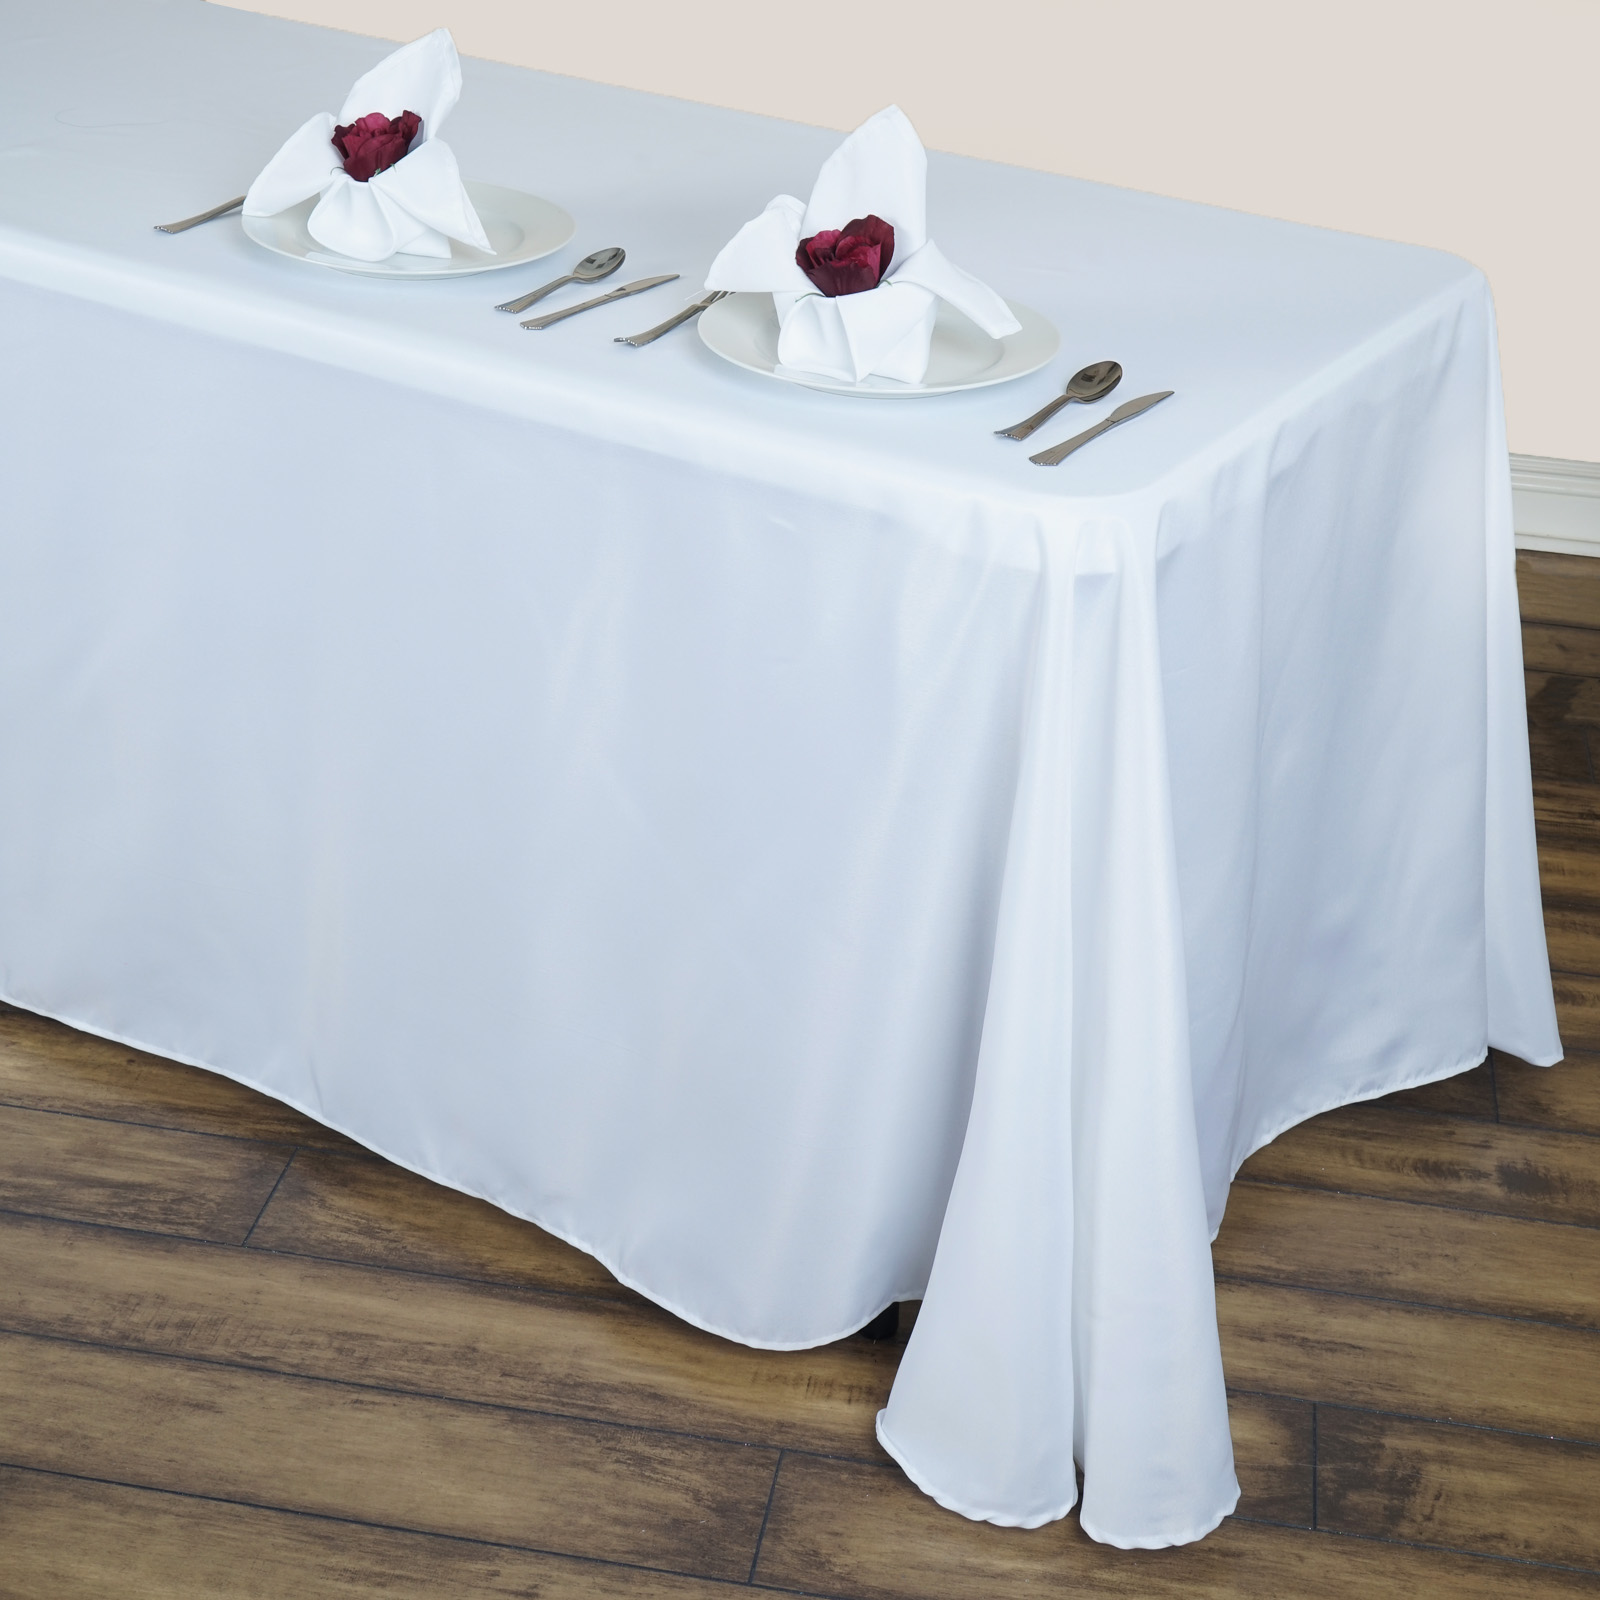 Efavormart Round Corner Polyester Rectangle Tablecloths For Kitchen Dining  Catering Wedding Birthday Party Decorations Events